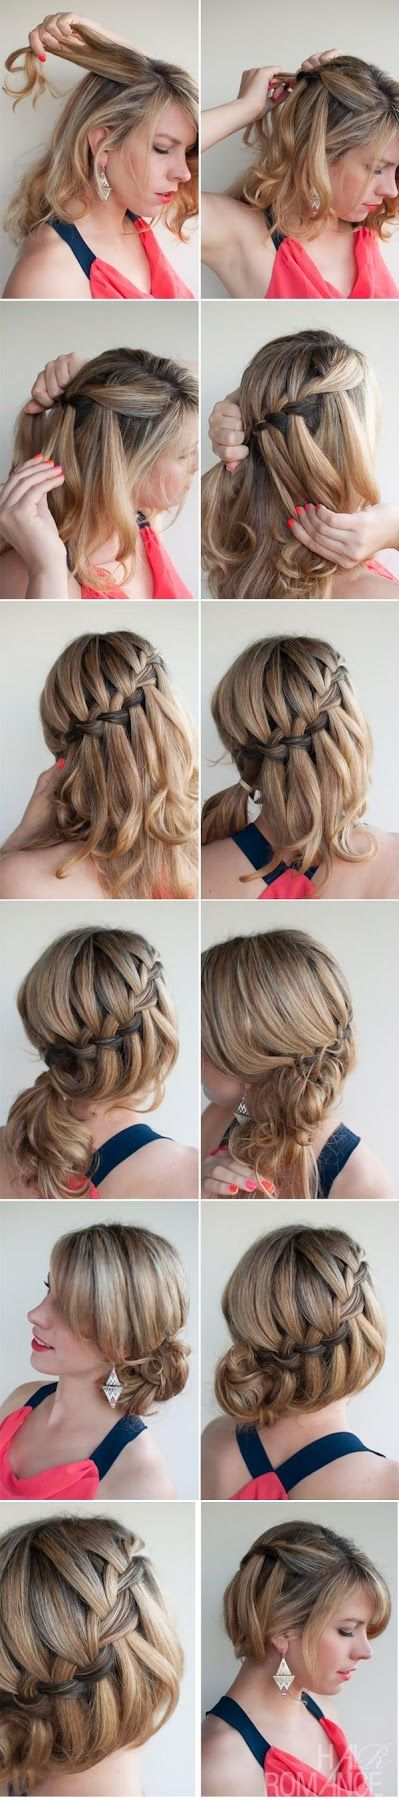 Make A Diy Waterfall Braided Bun